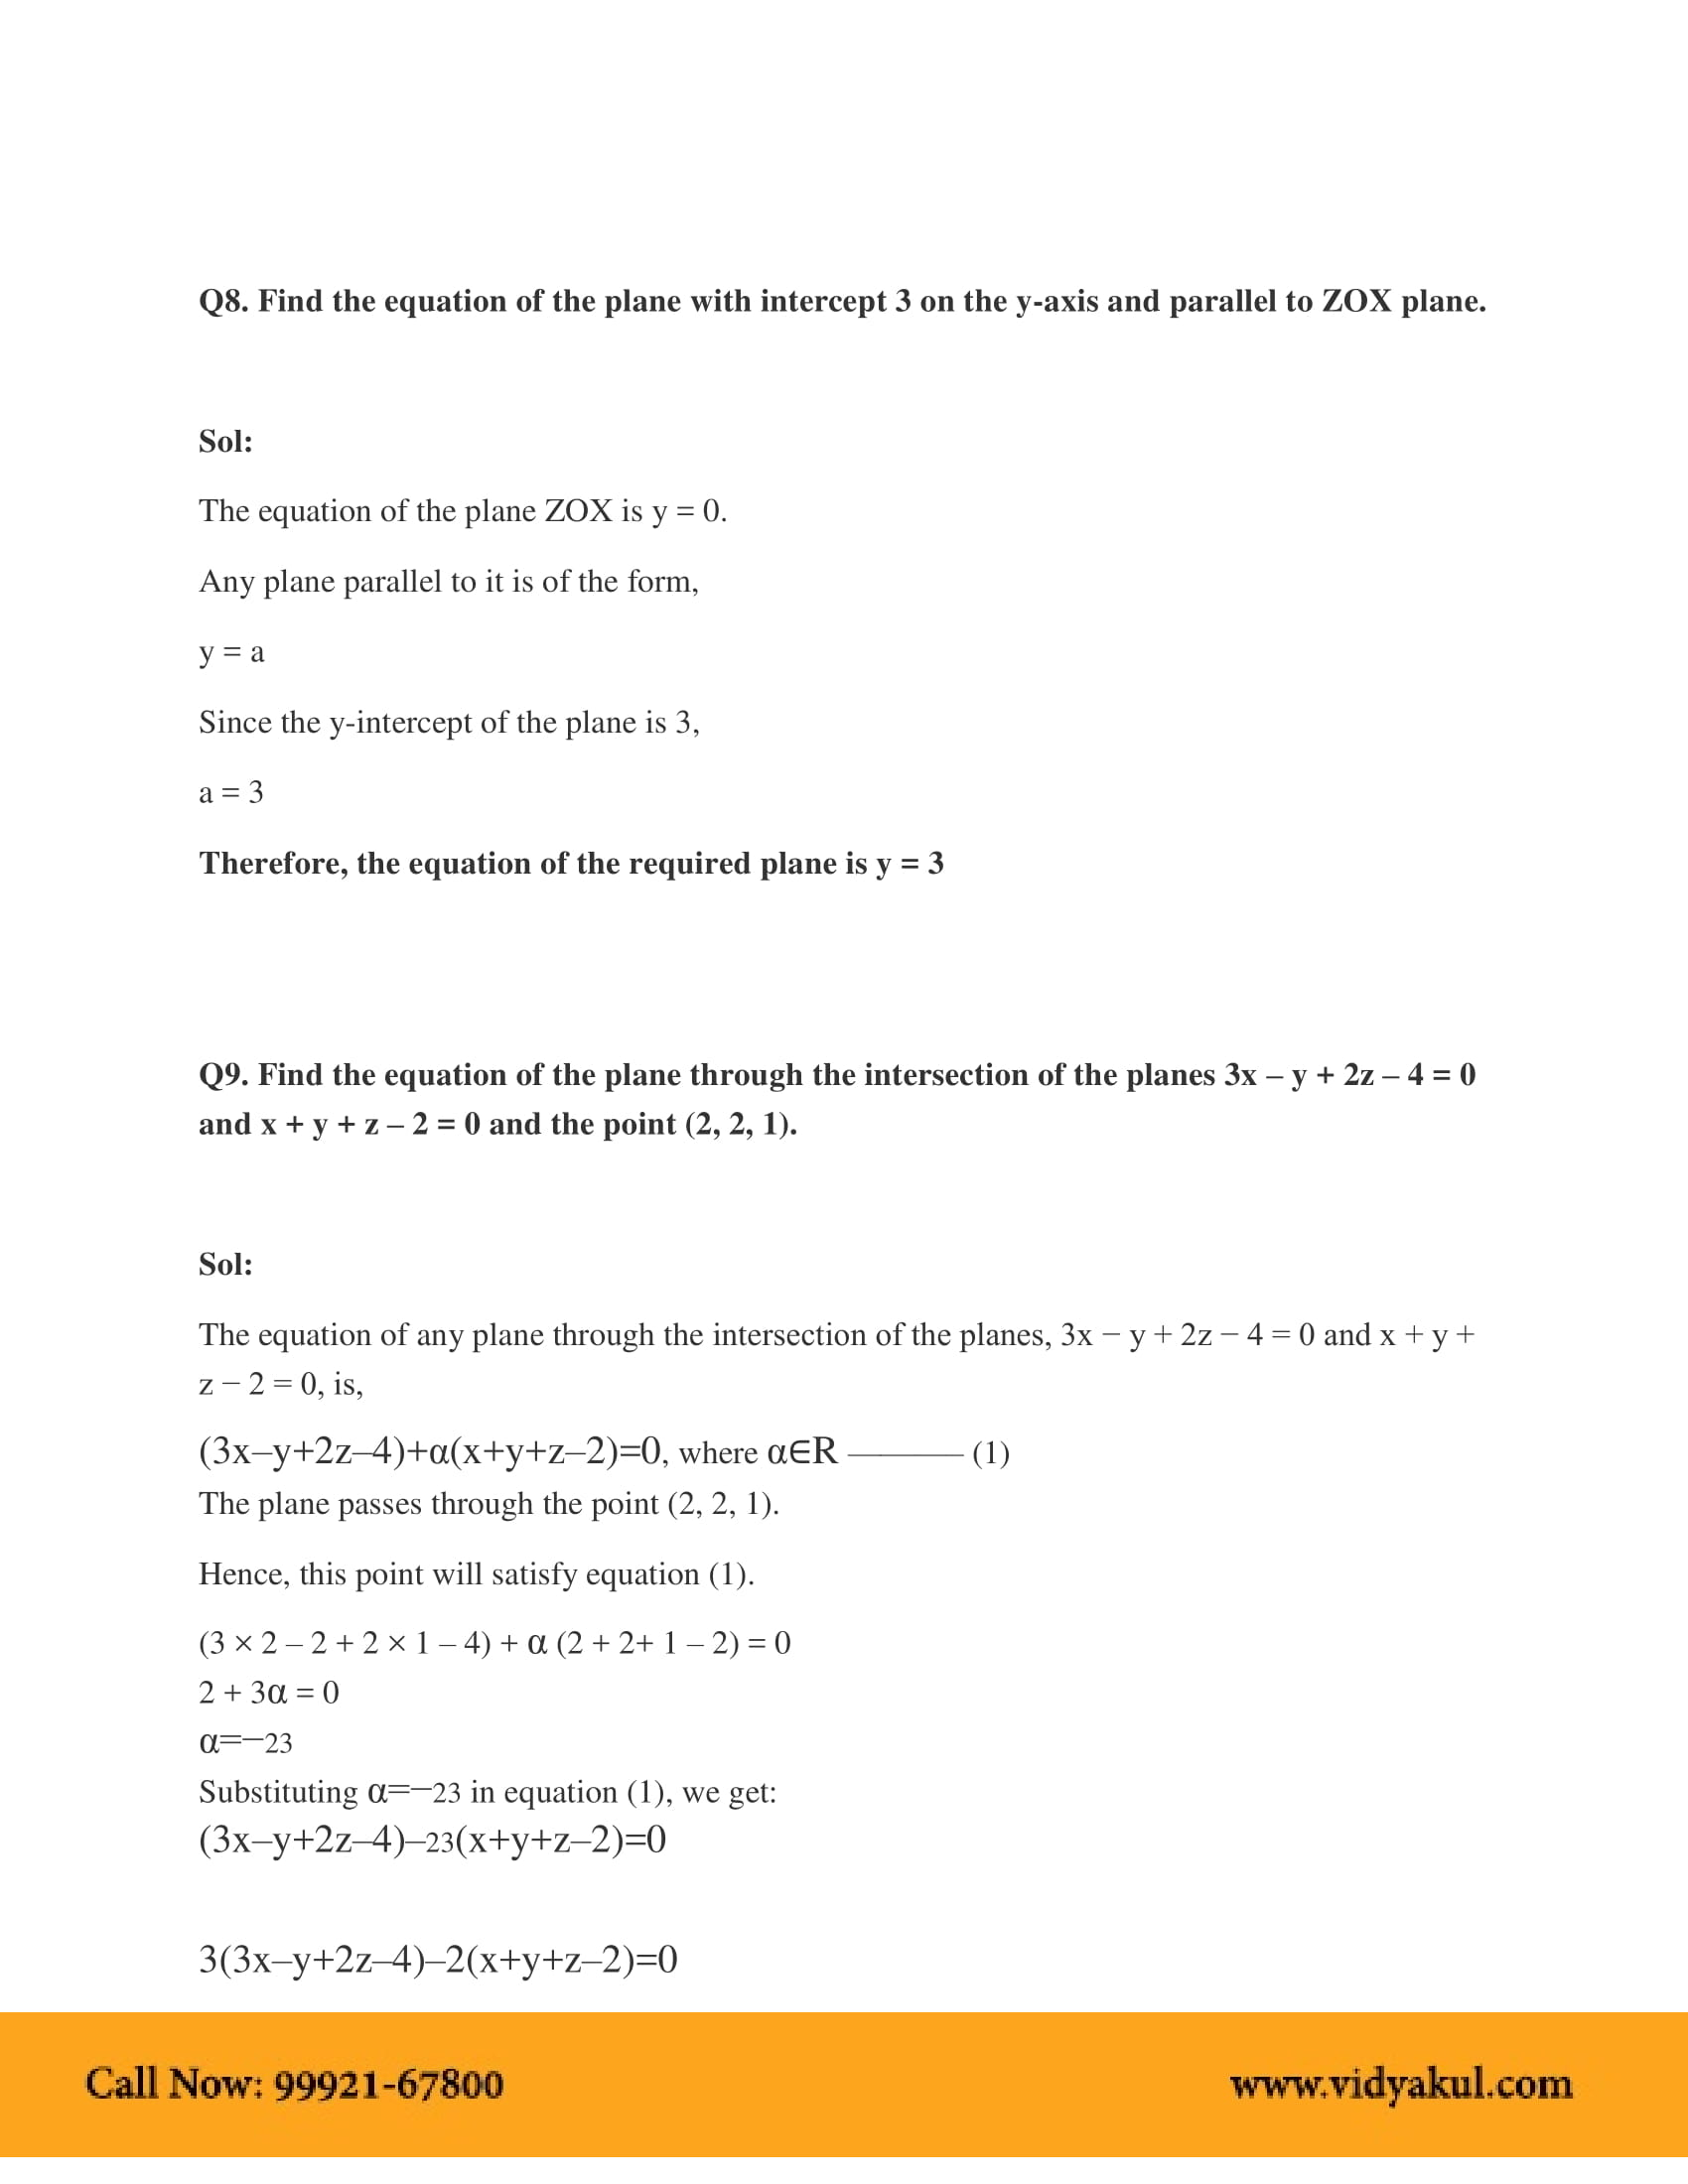 NCERT Solutions for Class 12 Maths Chapter 11 | Vidyakul